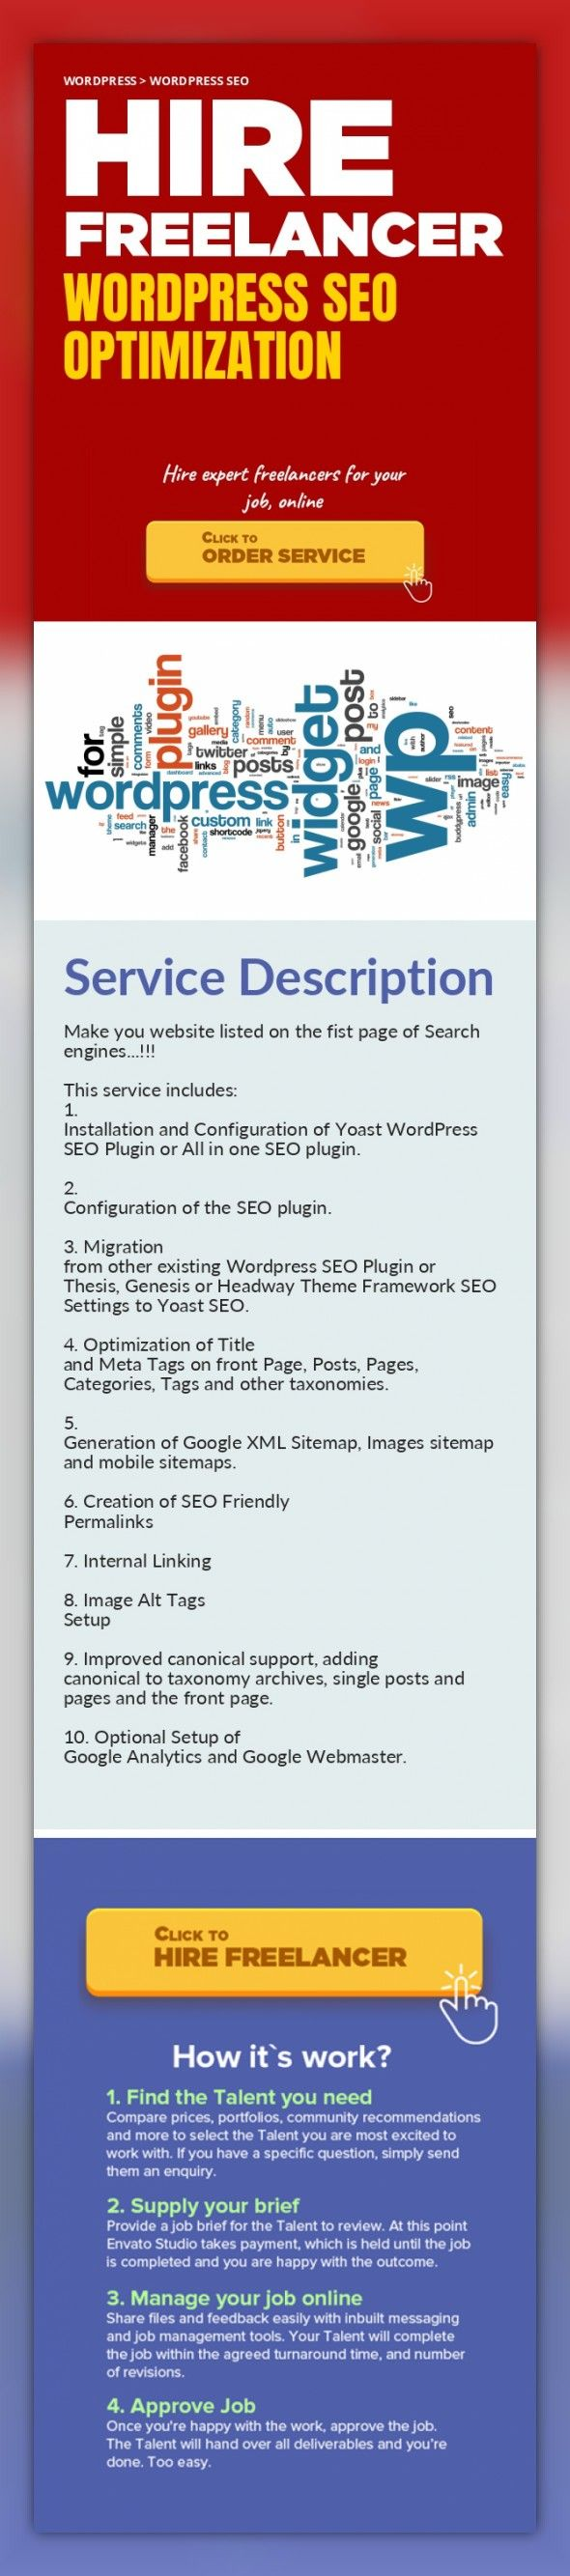 Wordpress SEO Optimization WordPress, WordPress SEO   Make you website listed on the fist page of Search engines...!!!    This service includes:  1. Installation and Configuration of Yoast WordPress SEO Plugin or All in one SEO plugin.    2. Configuration of the SEO plugin.    3. Migration from other existing Wordpress SEO Plugin or Thesis, Genesis or Headway Theme Framework SEO Settings to Yoast ...